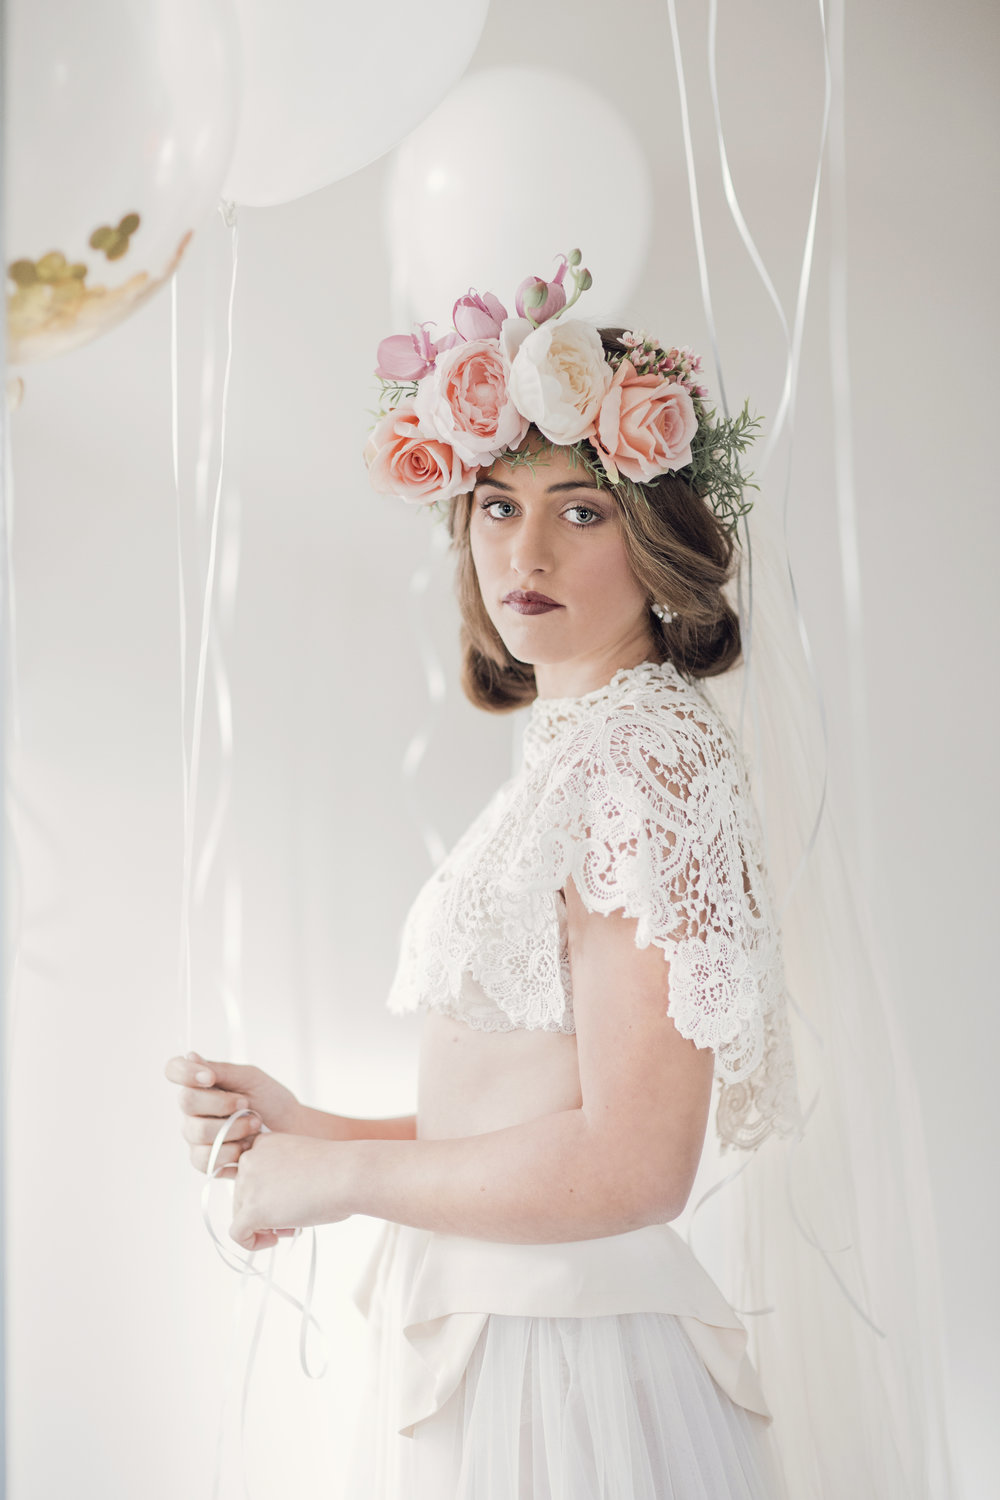 Jessica Rose Photography_Vintage Bride Shoot_125.jpg